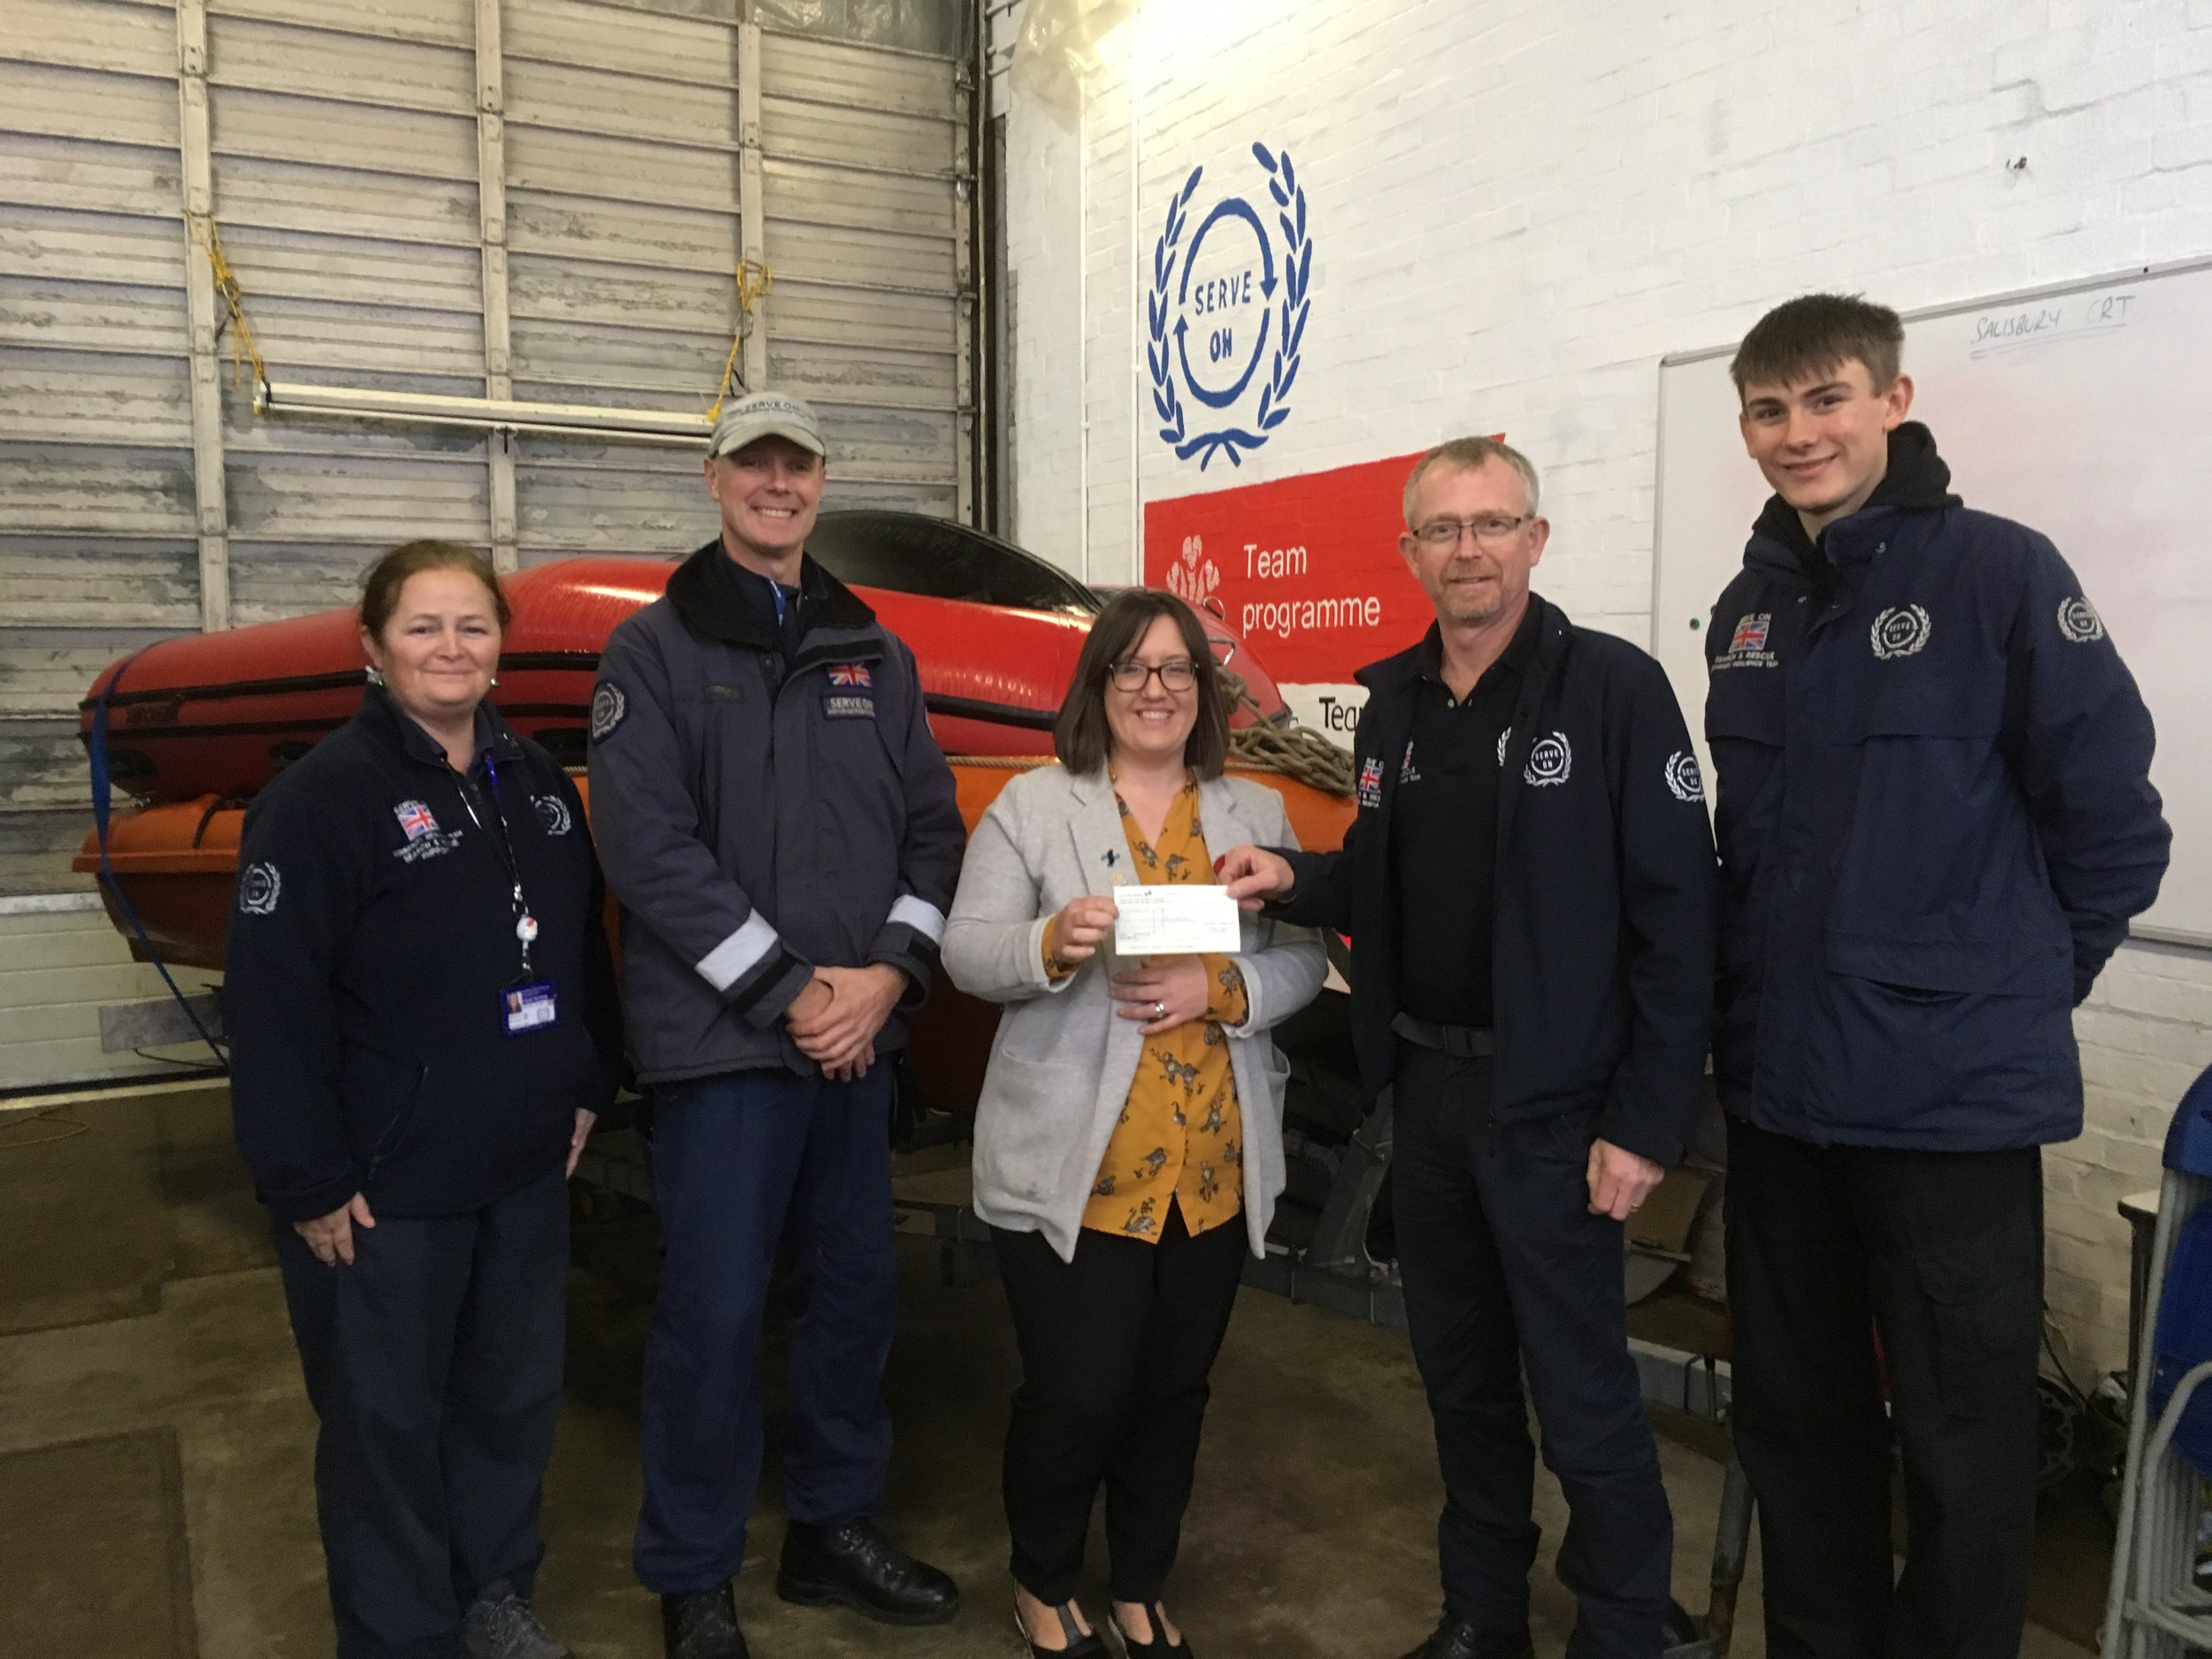 Victoria from The Eight Foundation hands over a cheque to Serve On volunteers Laura, Craig, Martin and Ethan.